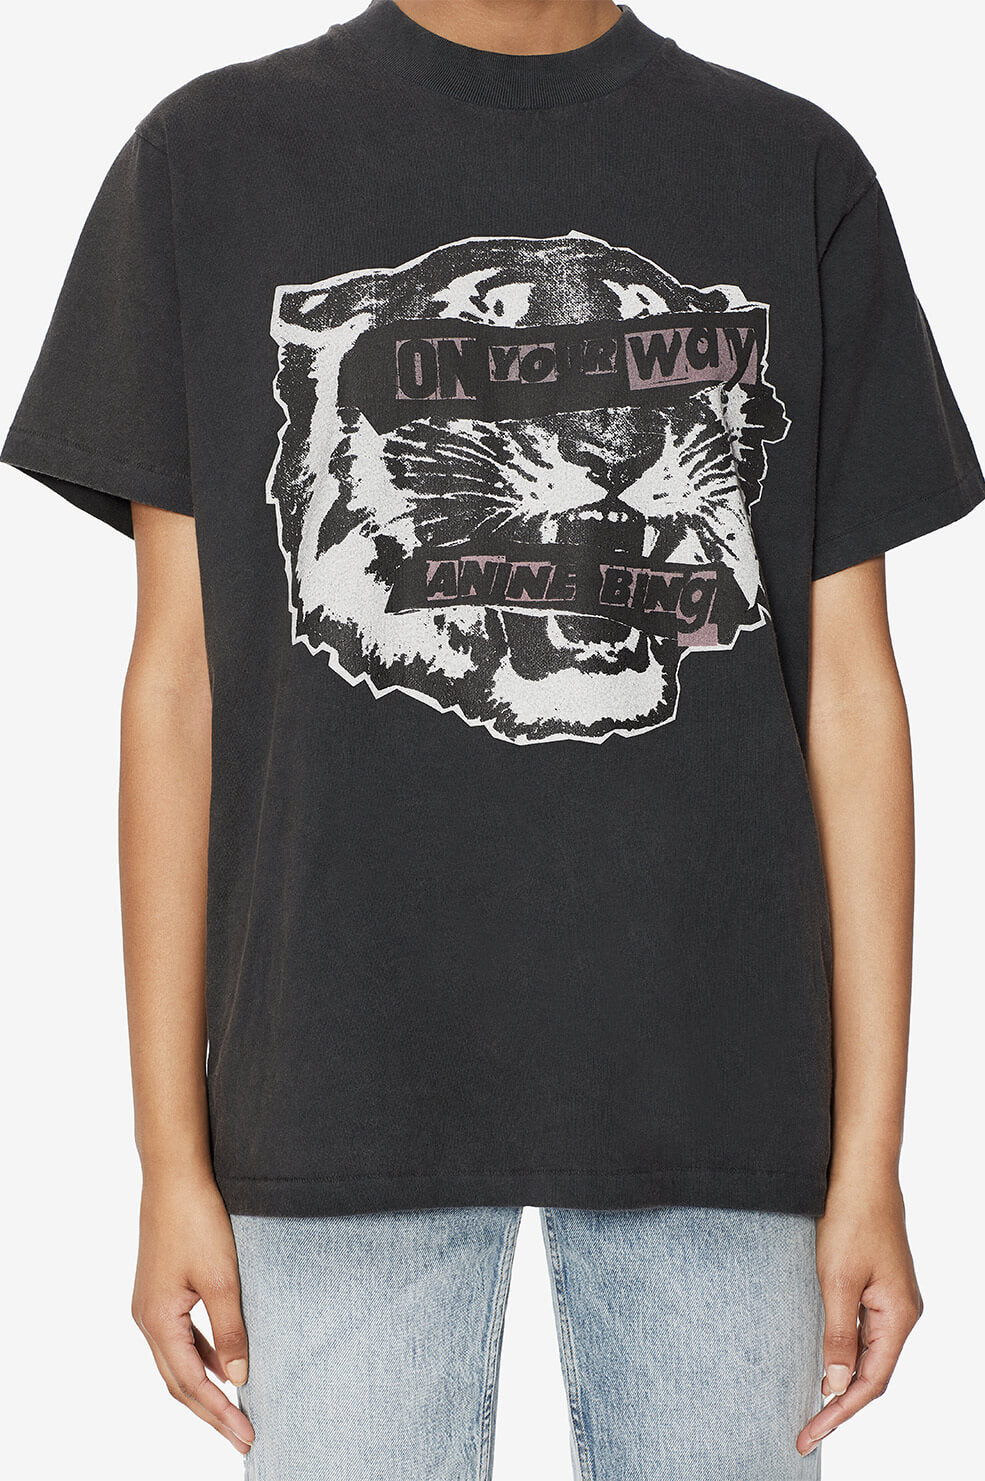 ANINE BING Lili Tee Tiger Eyes - Black